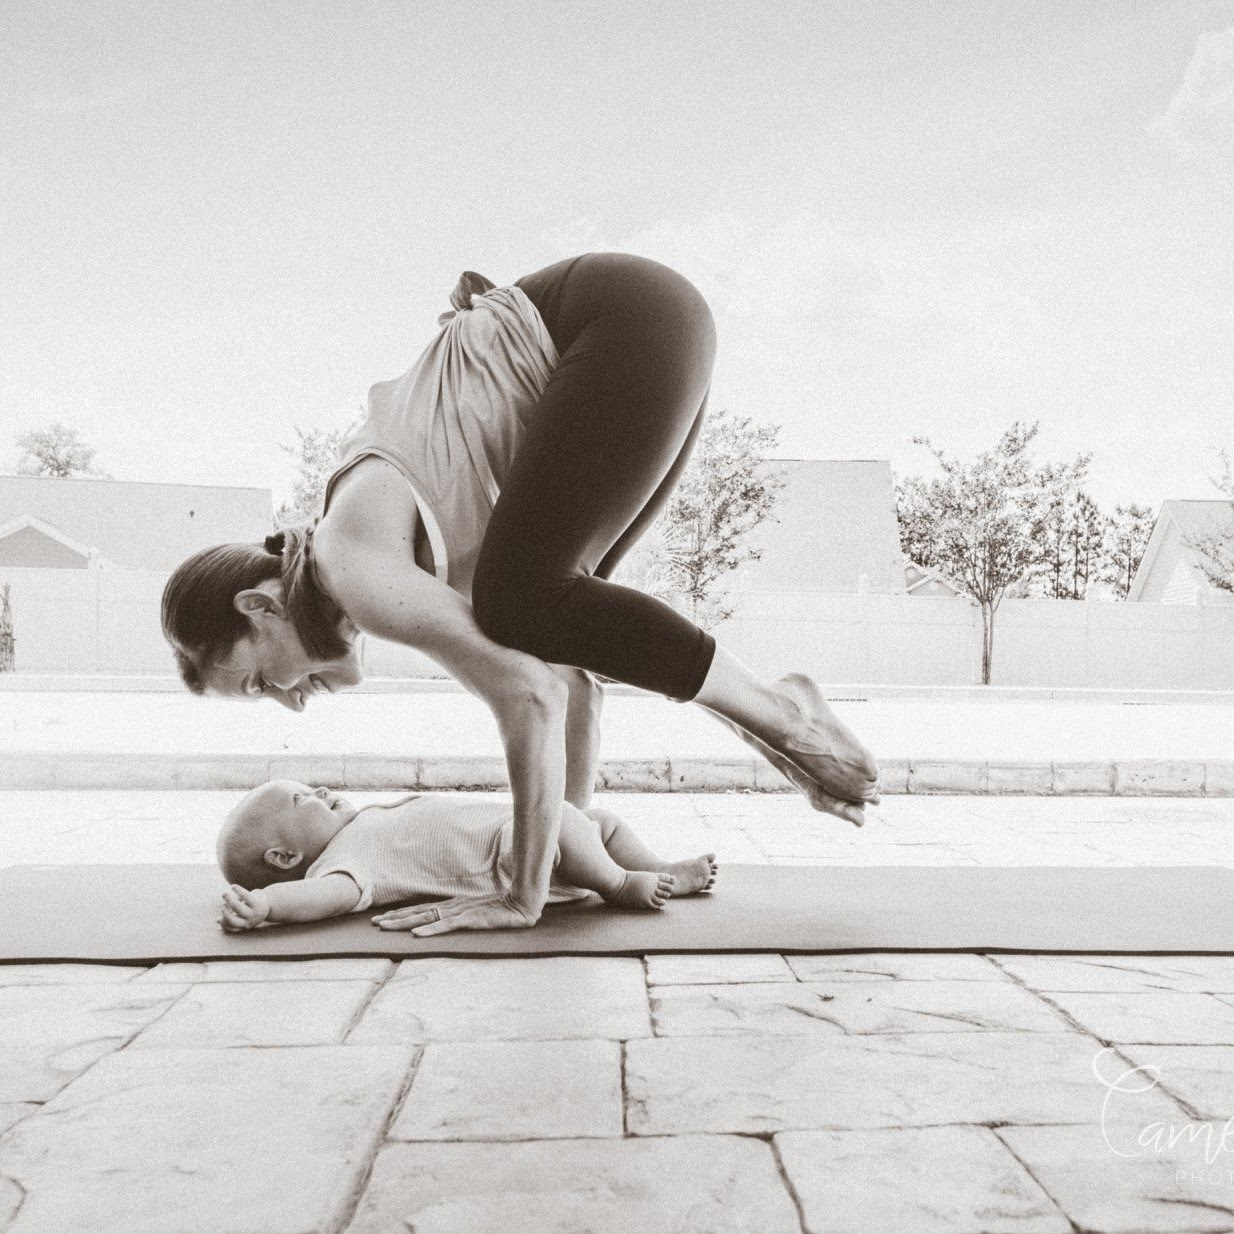 Jeri Hartley - Owner and Founder at Tone Sculpt Yoga